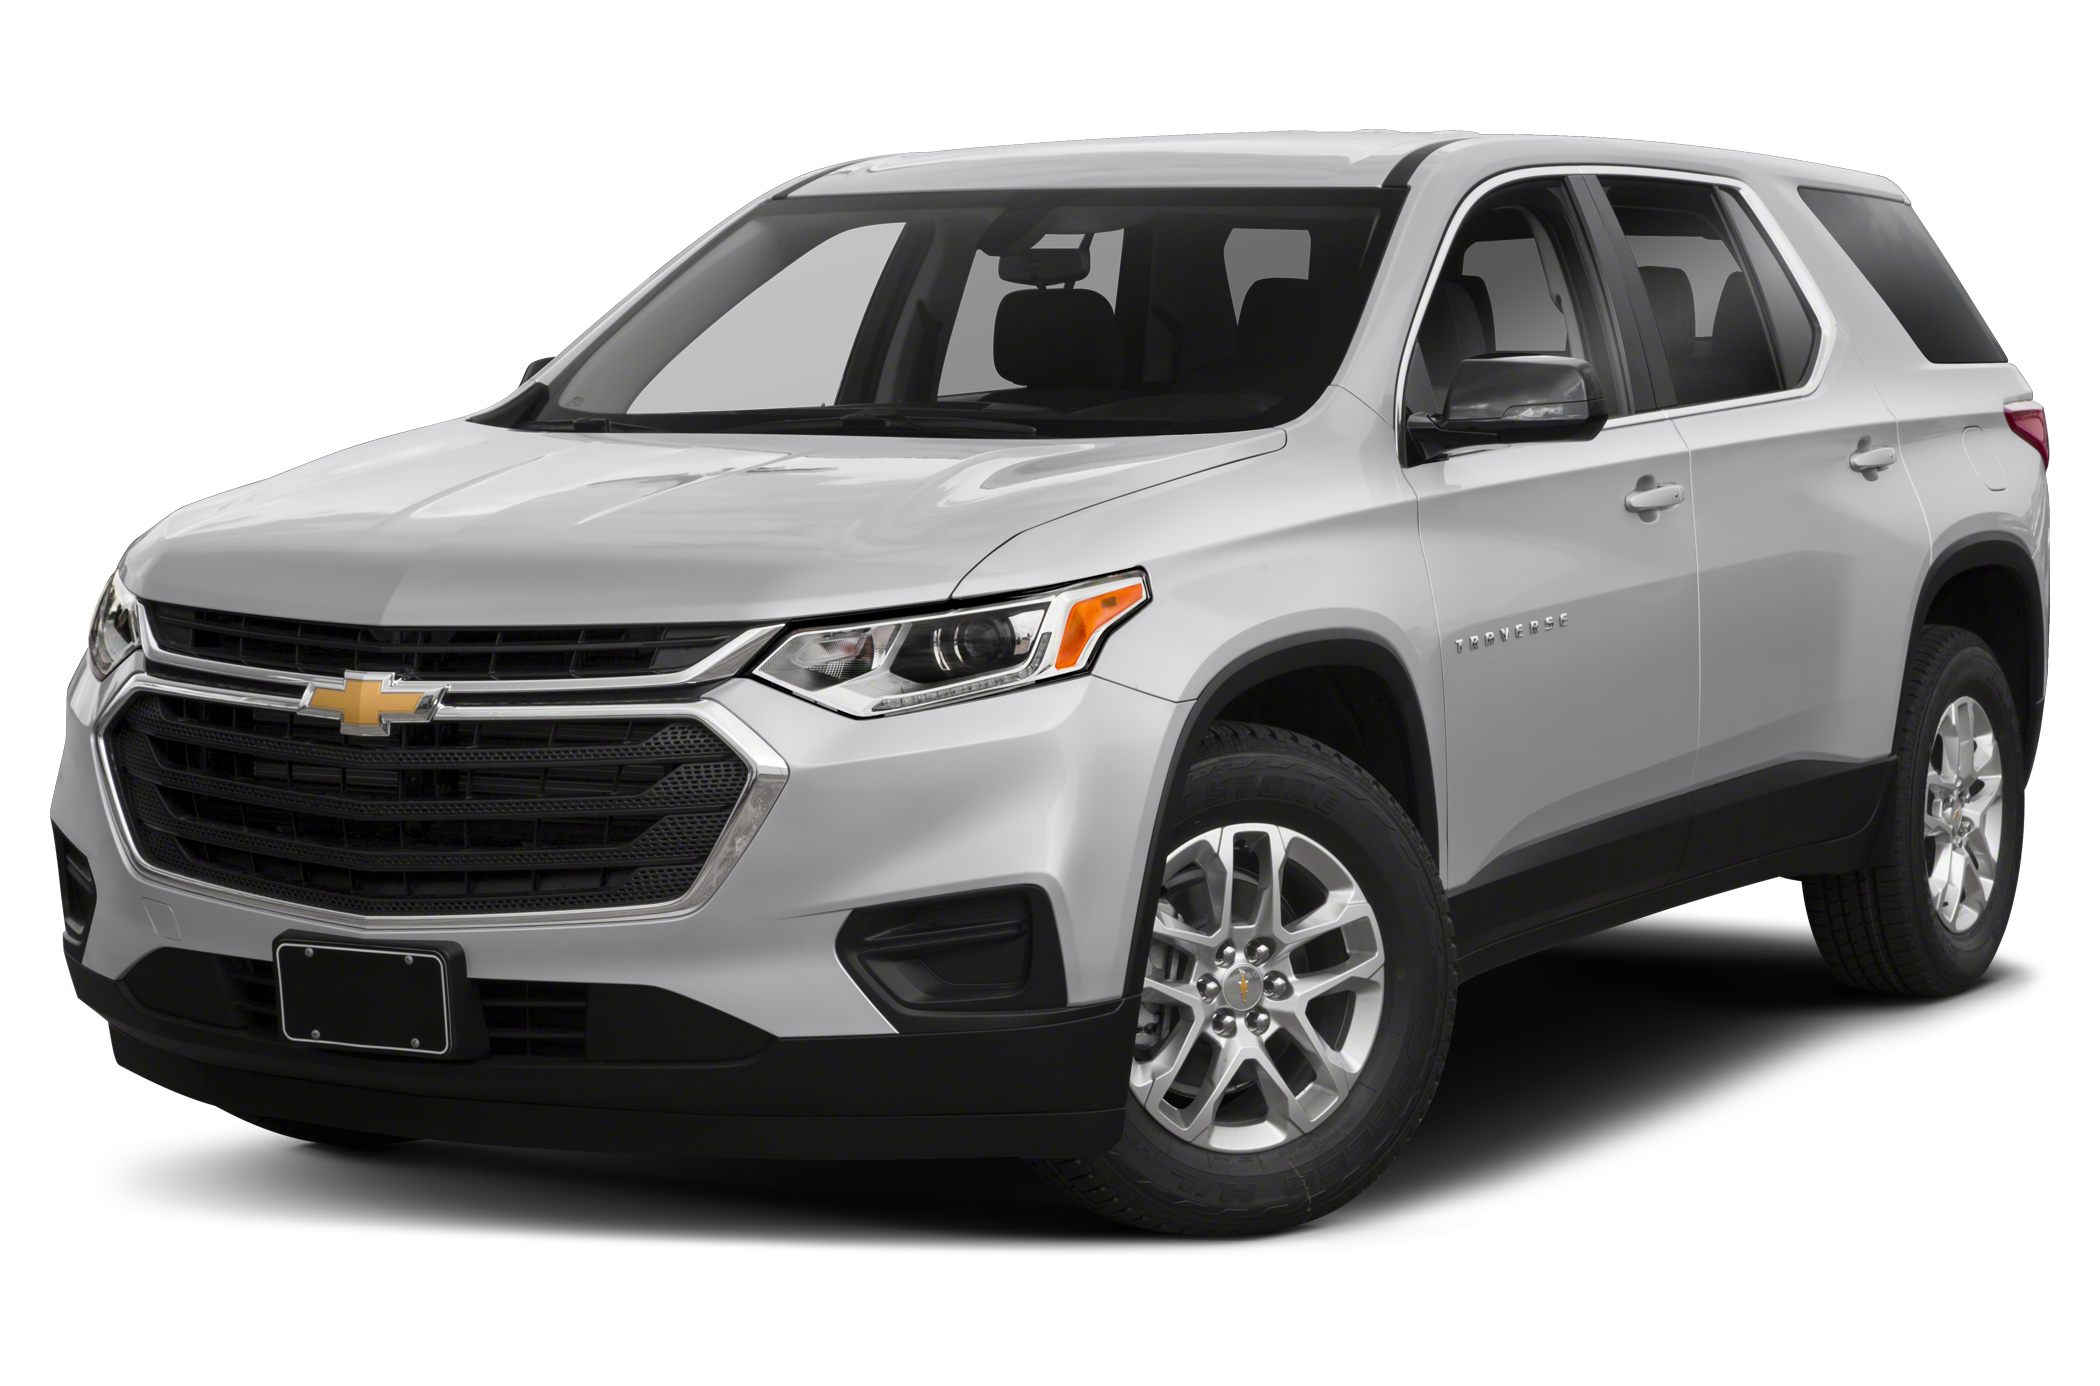 2018 Chevrolet Traverse Information